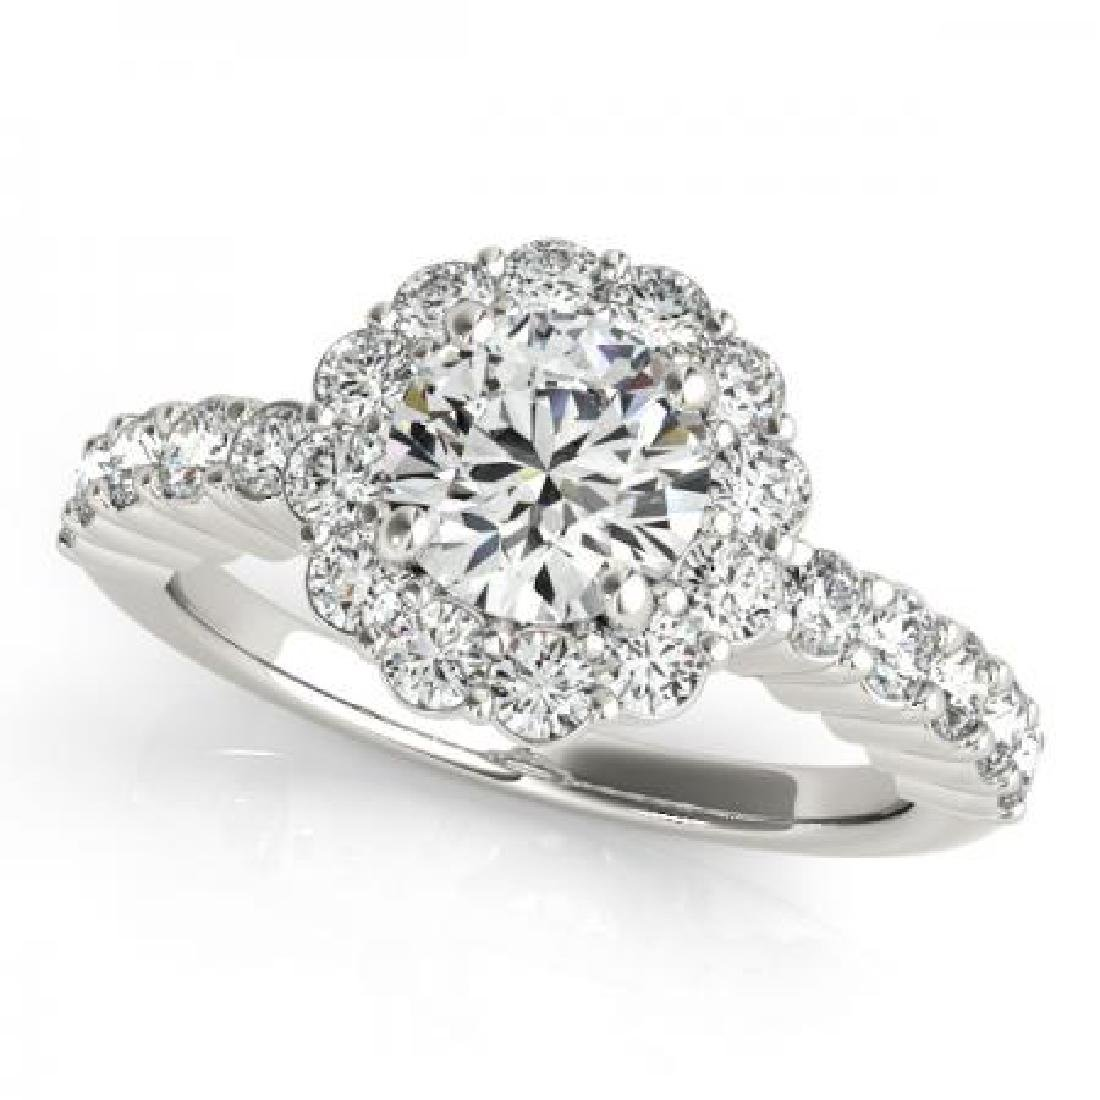 CERTIFIED PLATINUM 1.21 CT G-H/VS-SI1 DIAMOND HALO ENGA